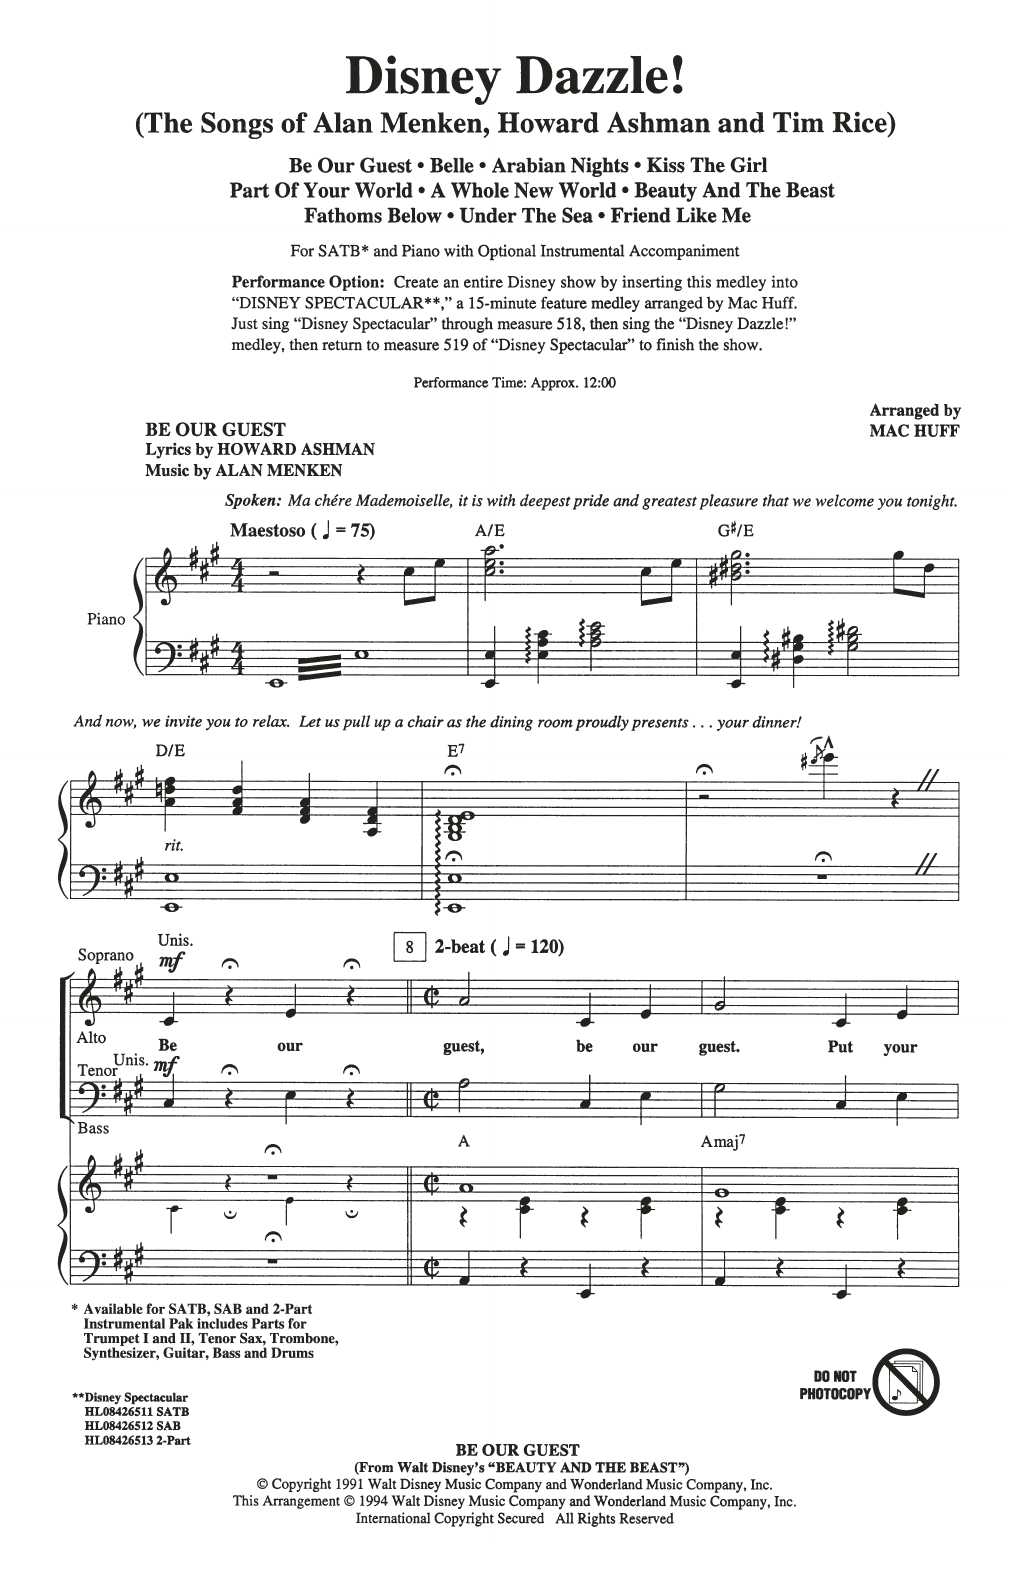 Disney Dazzle! (The Songs of Alan Menken, Howard Ashman and Tim Rice) (Medley) (SATB Choir)